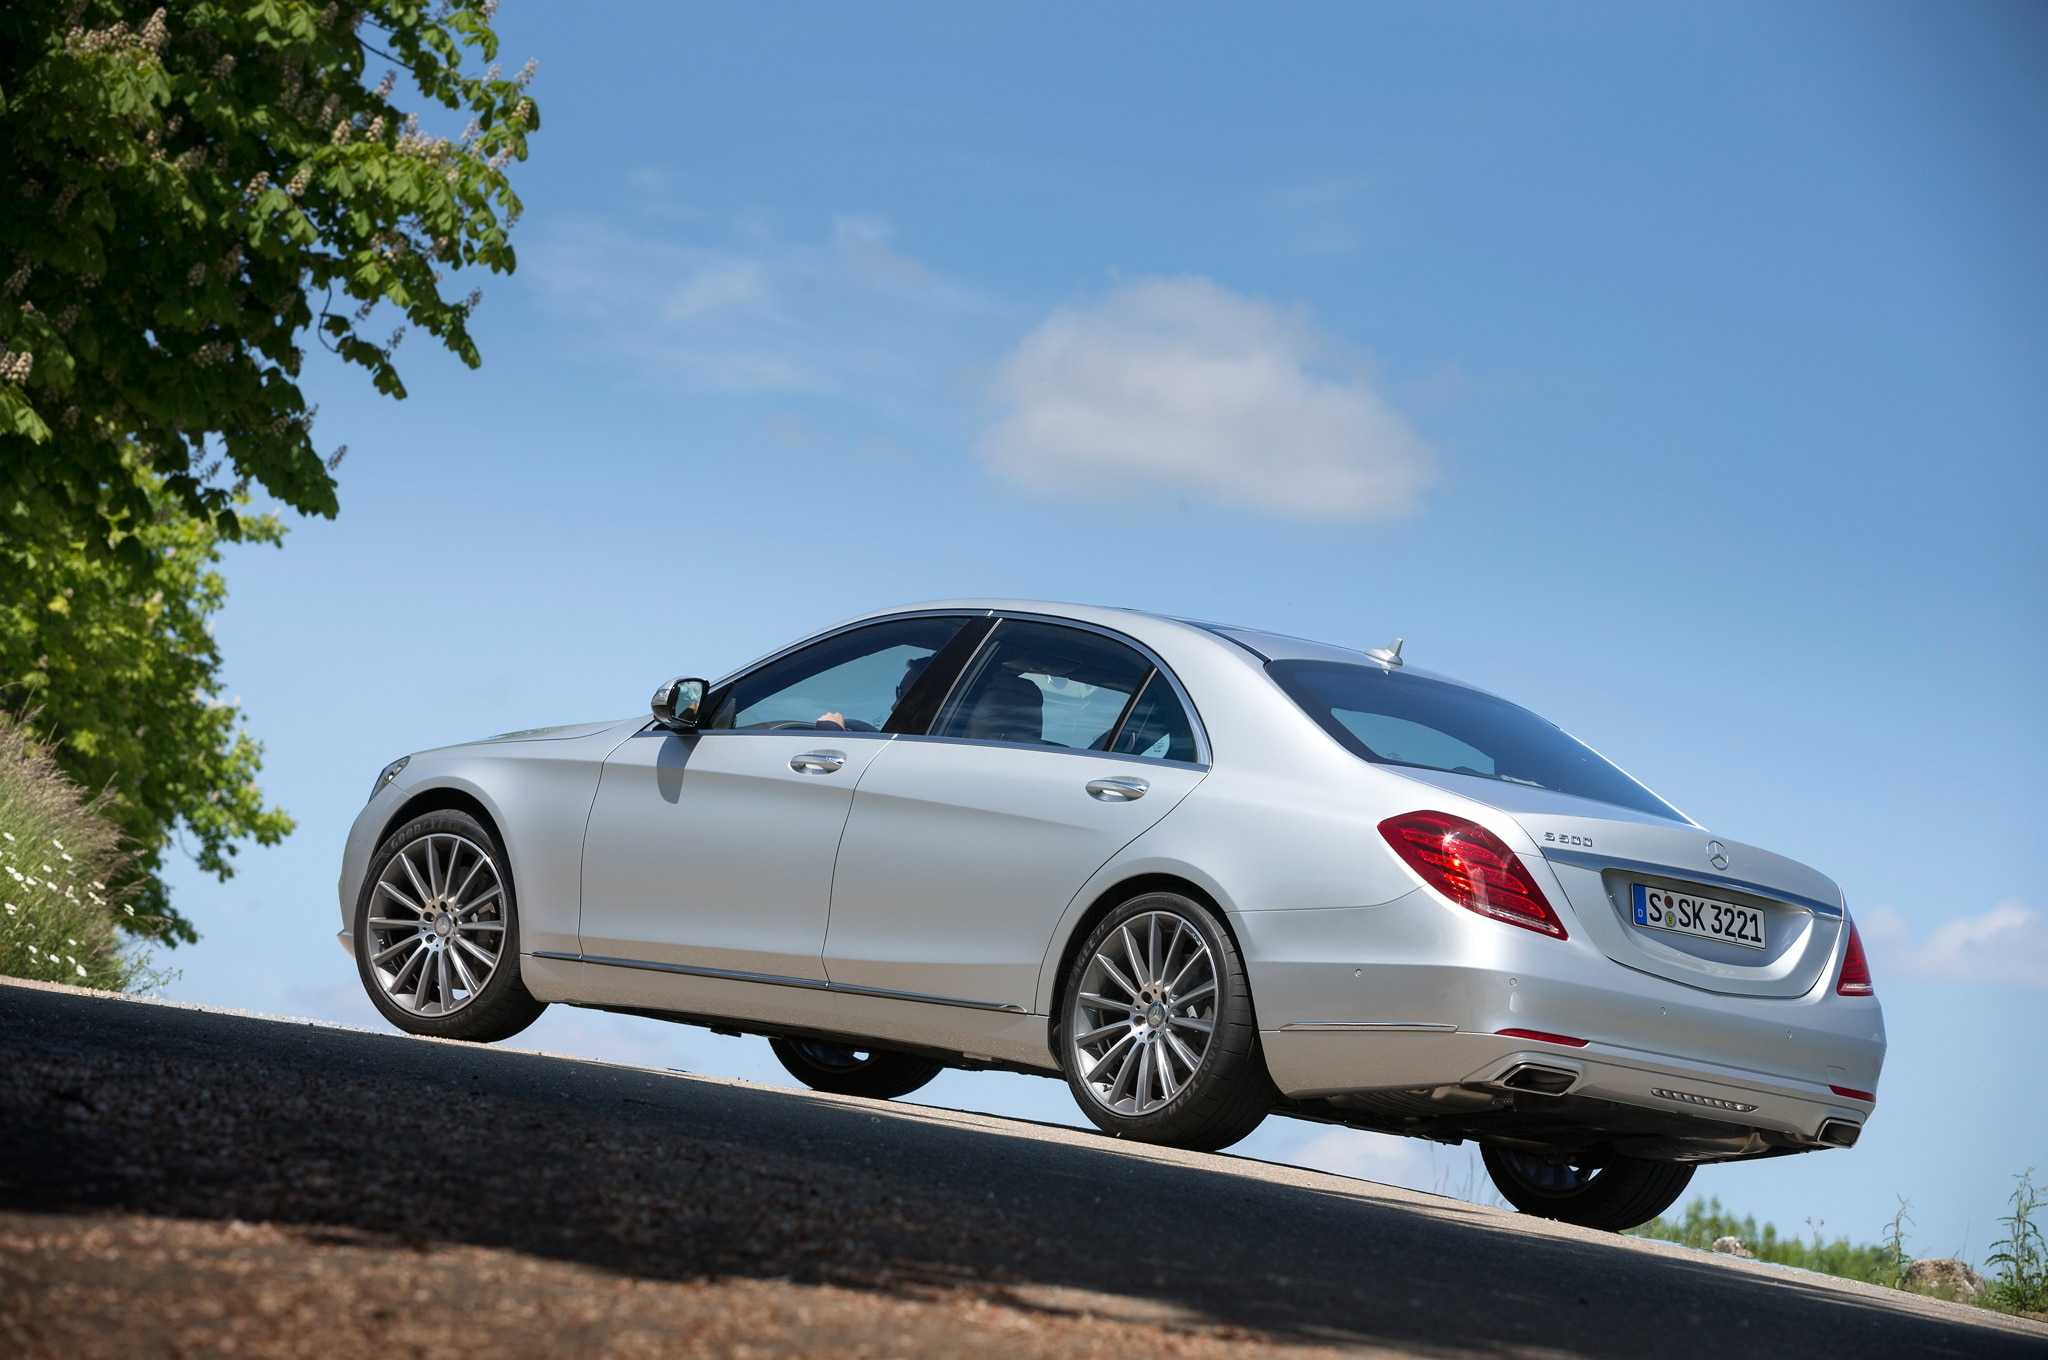 2014 mercedes benz s63 amg first drive automobile magazine for Mercedes benz s63 amg 2014